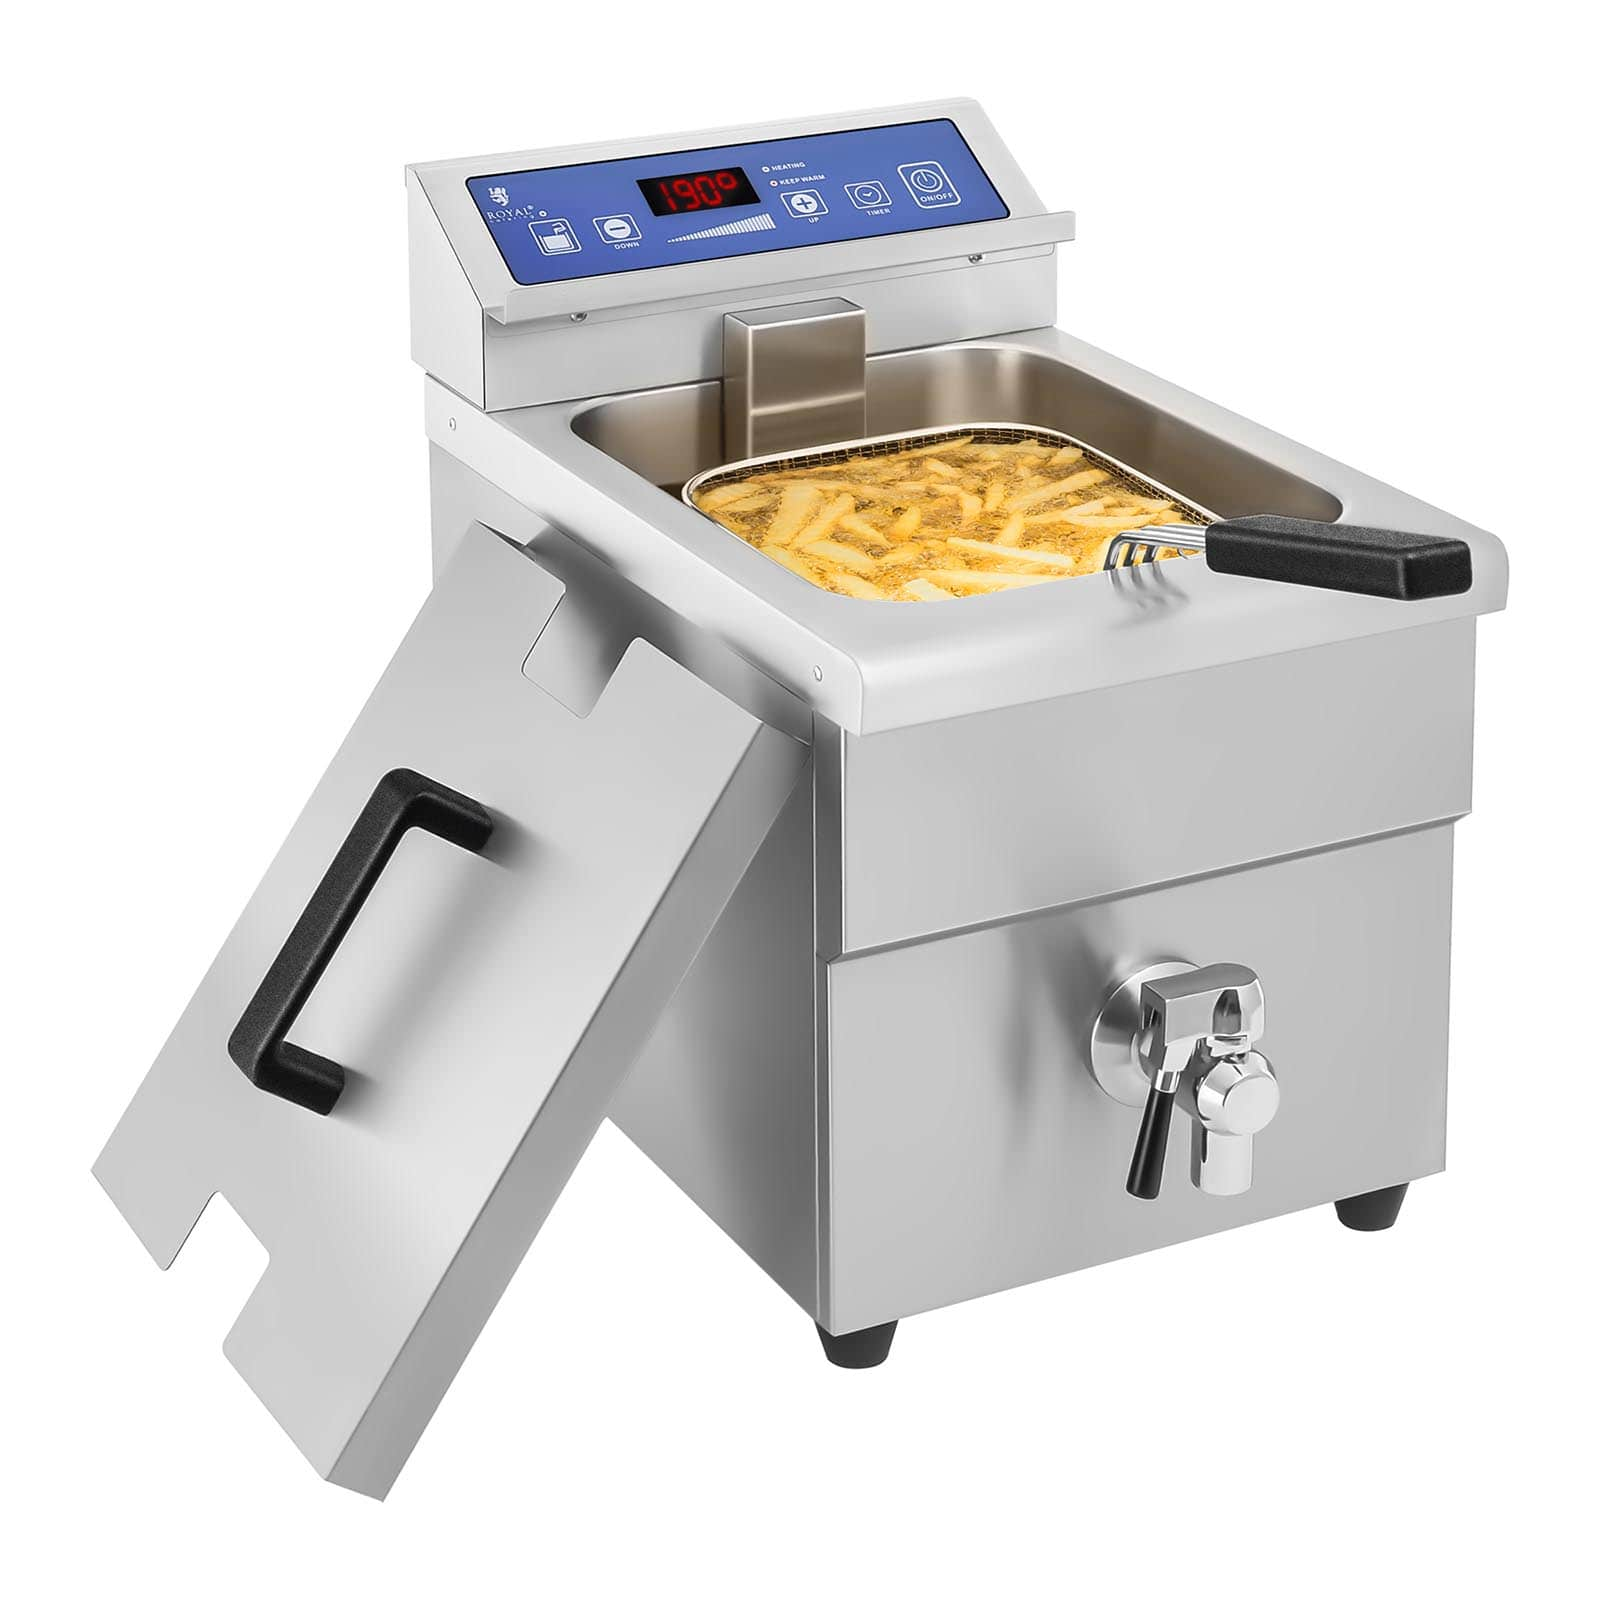 Friteuse a induction